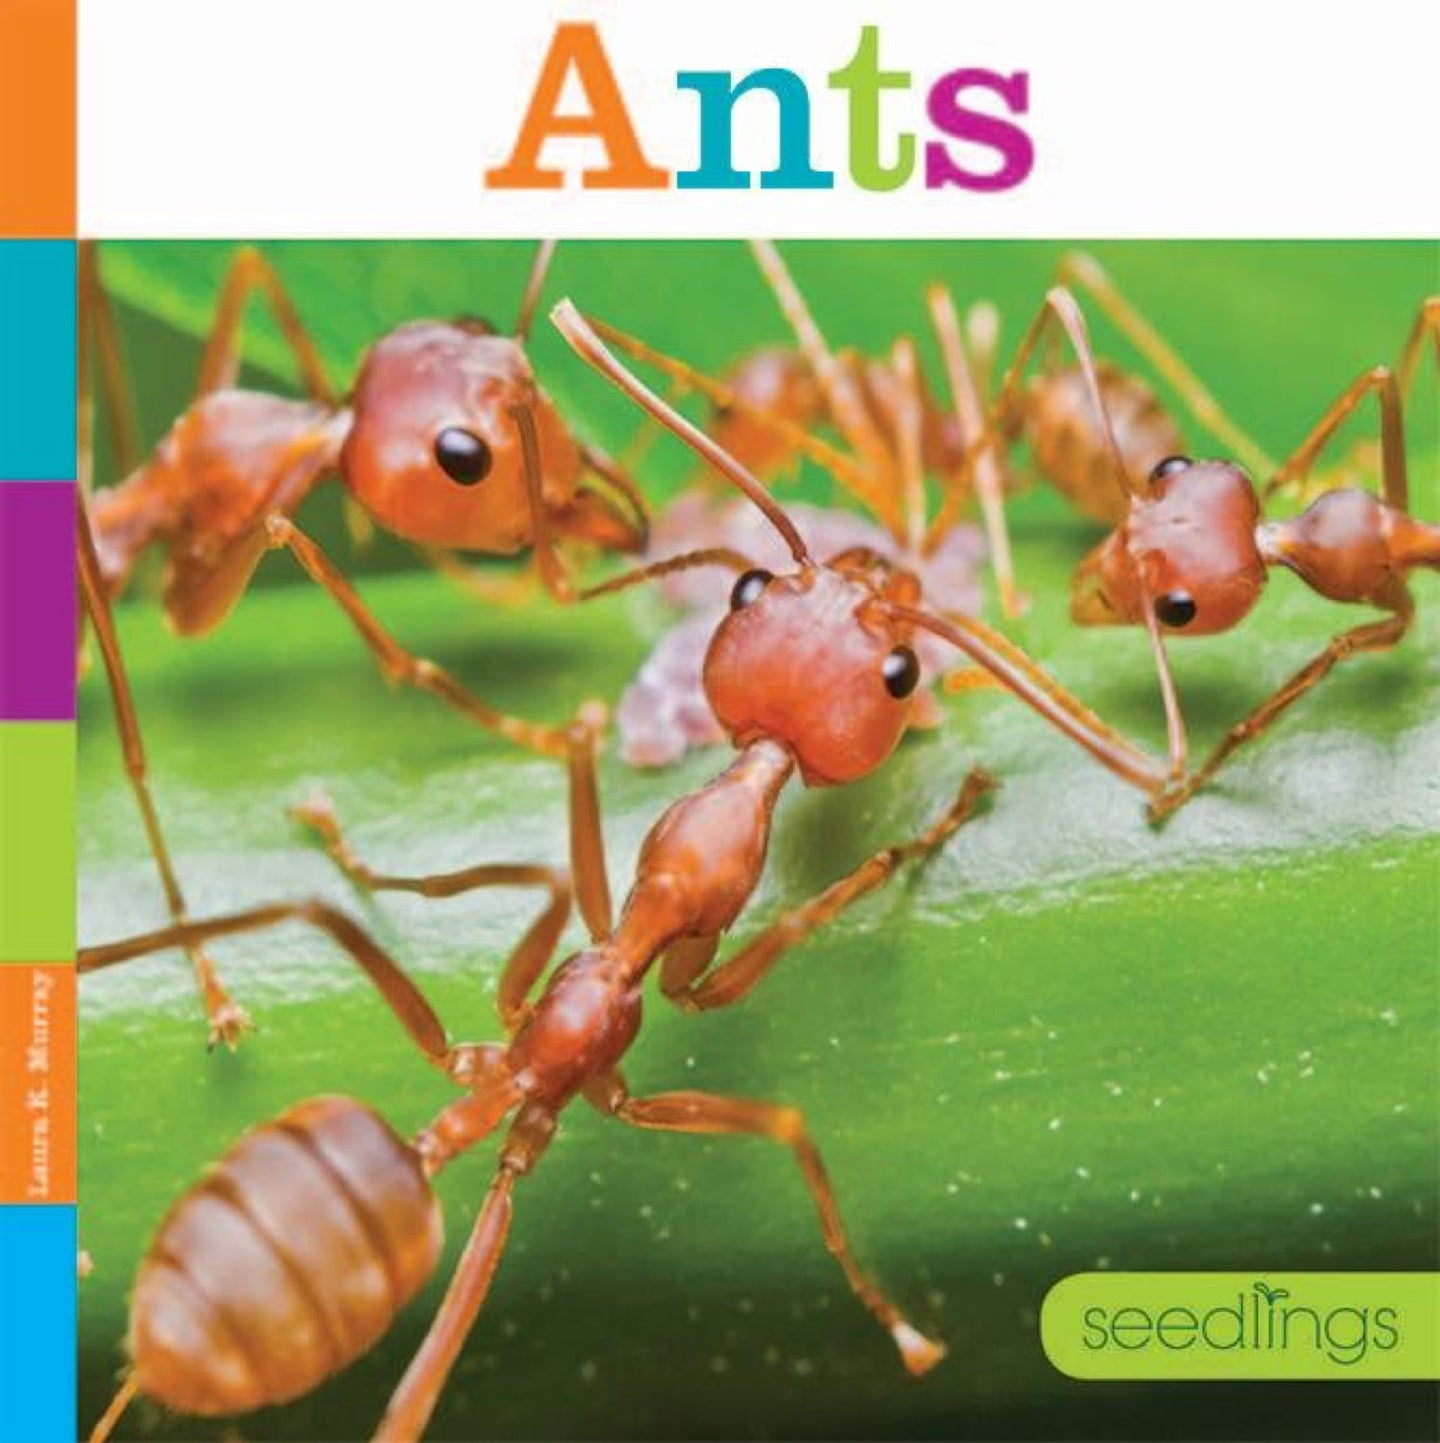 Seedlings: Ants